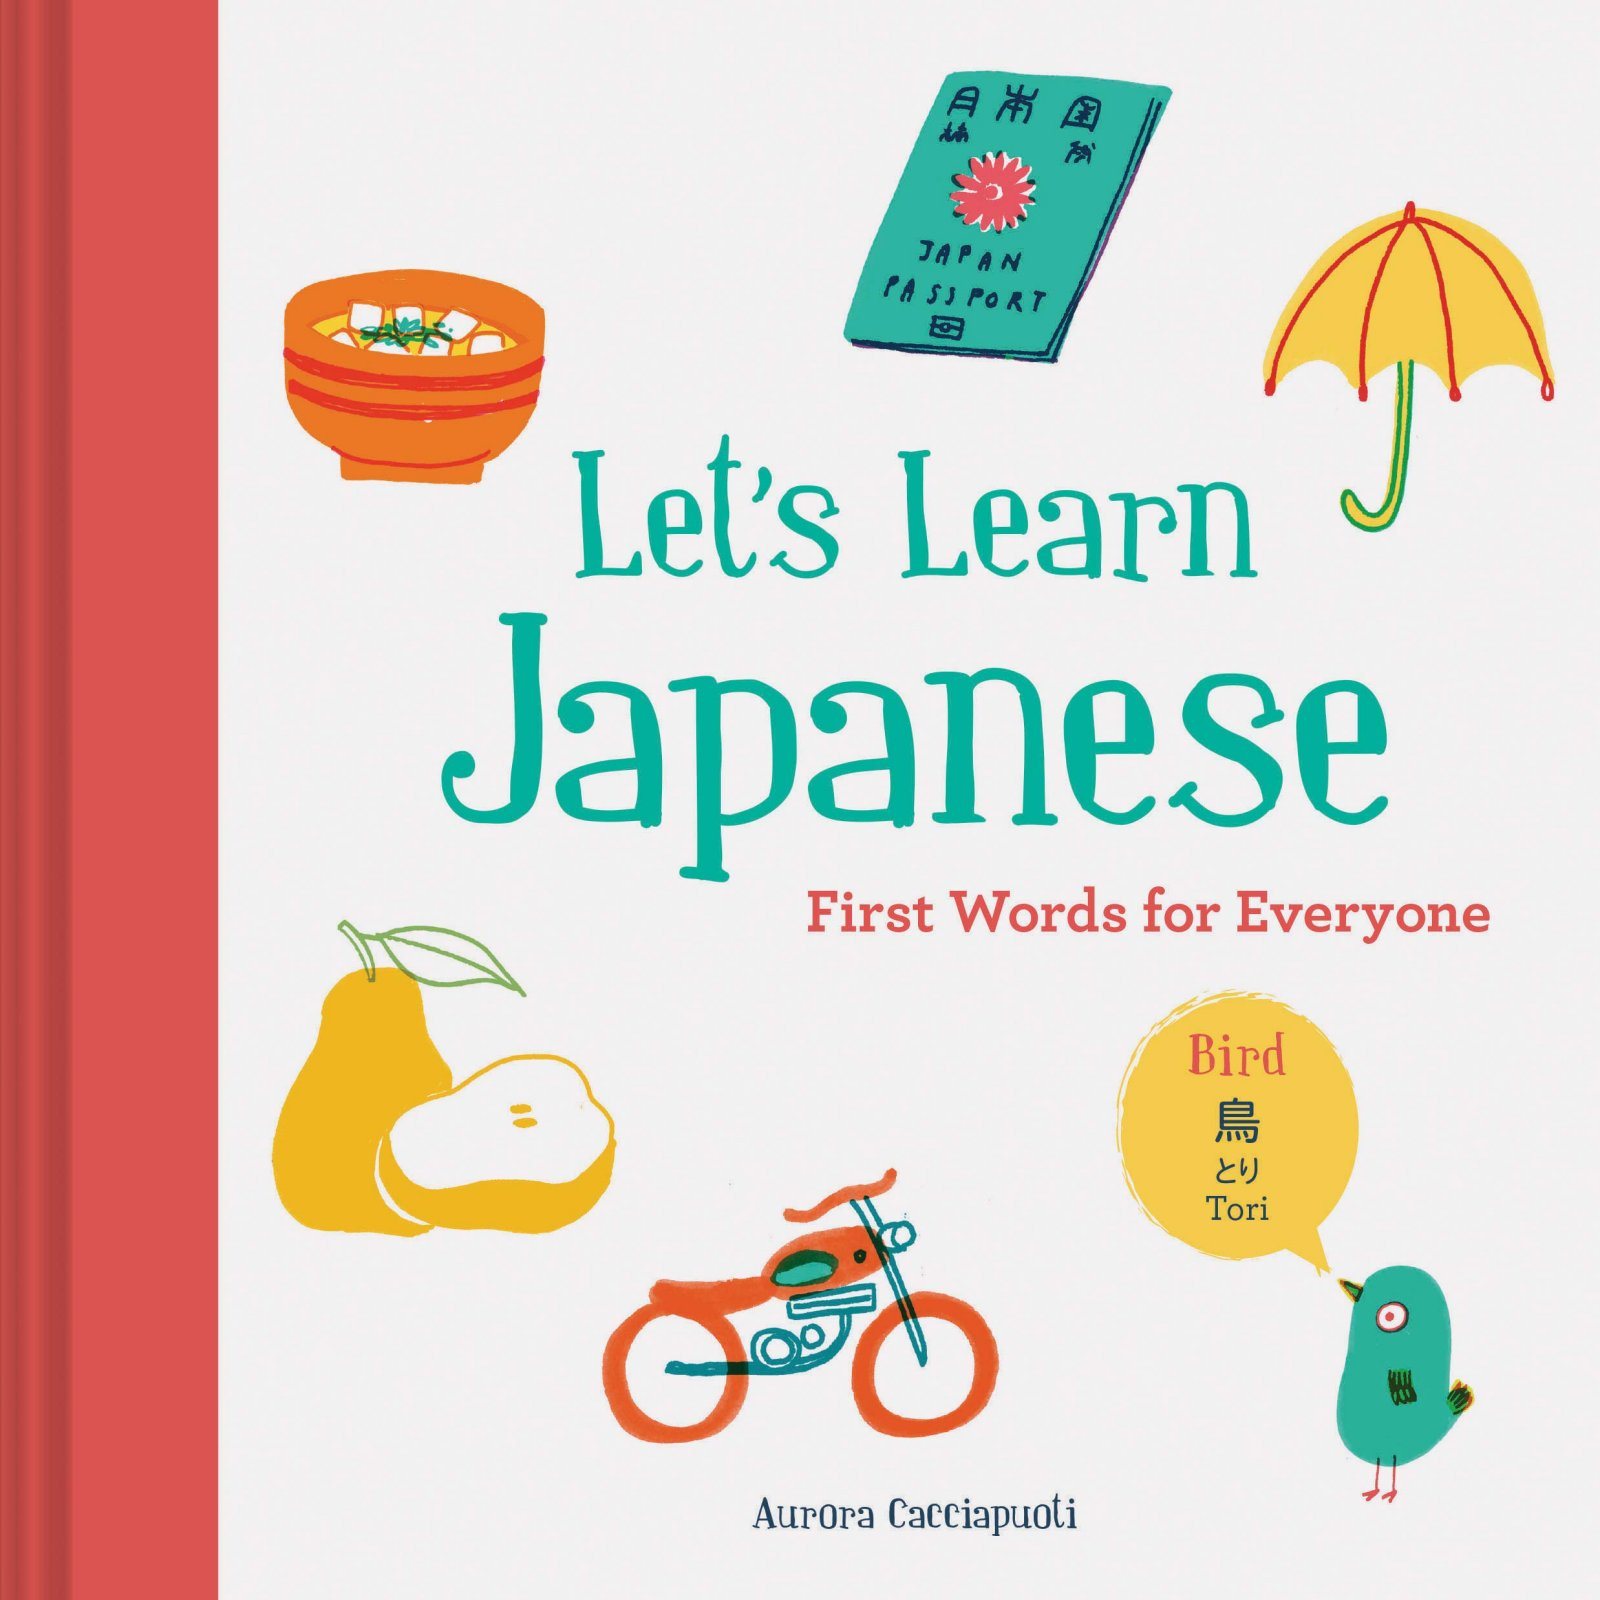 Let's Learn Japanese by Aurora Cacciapuoti